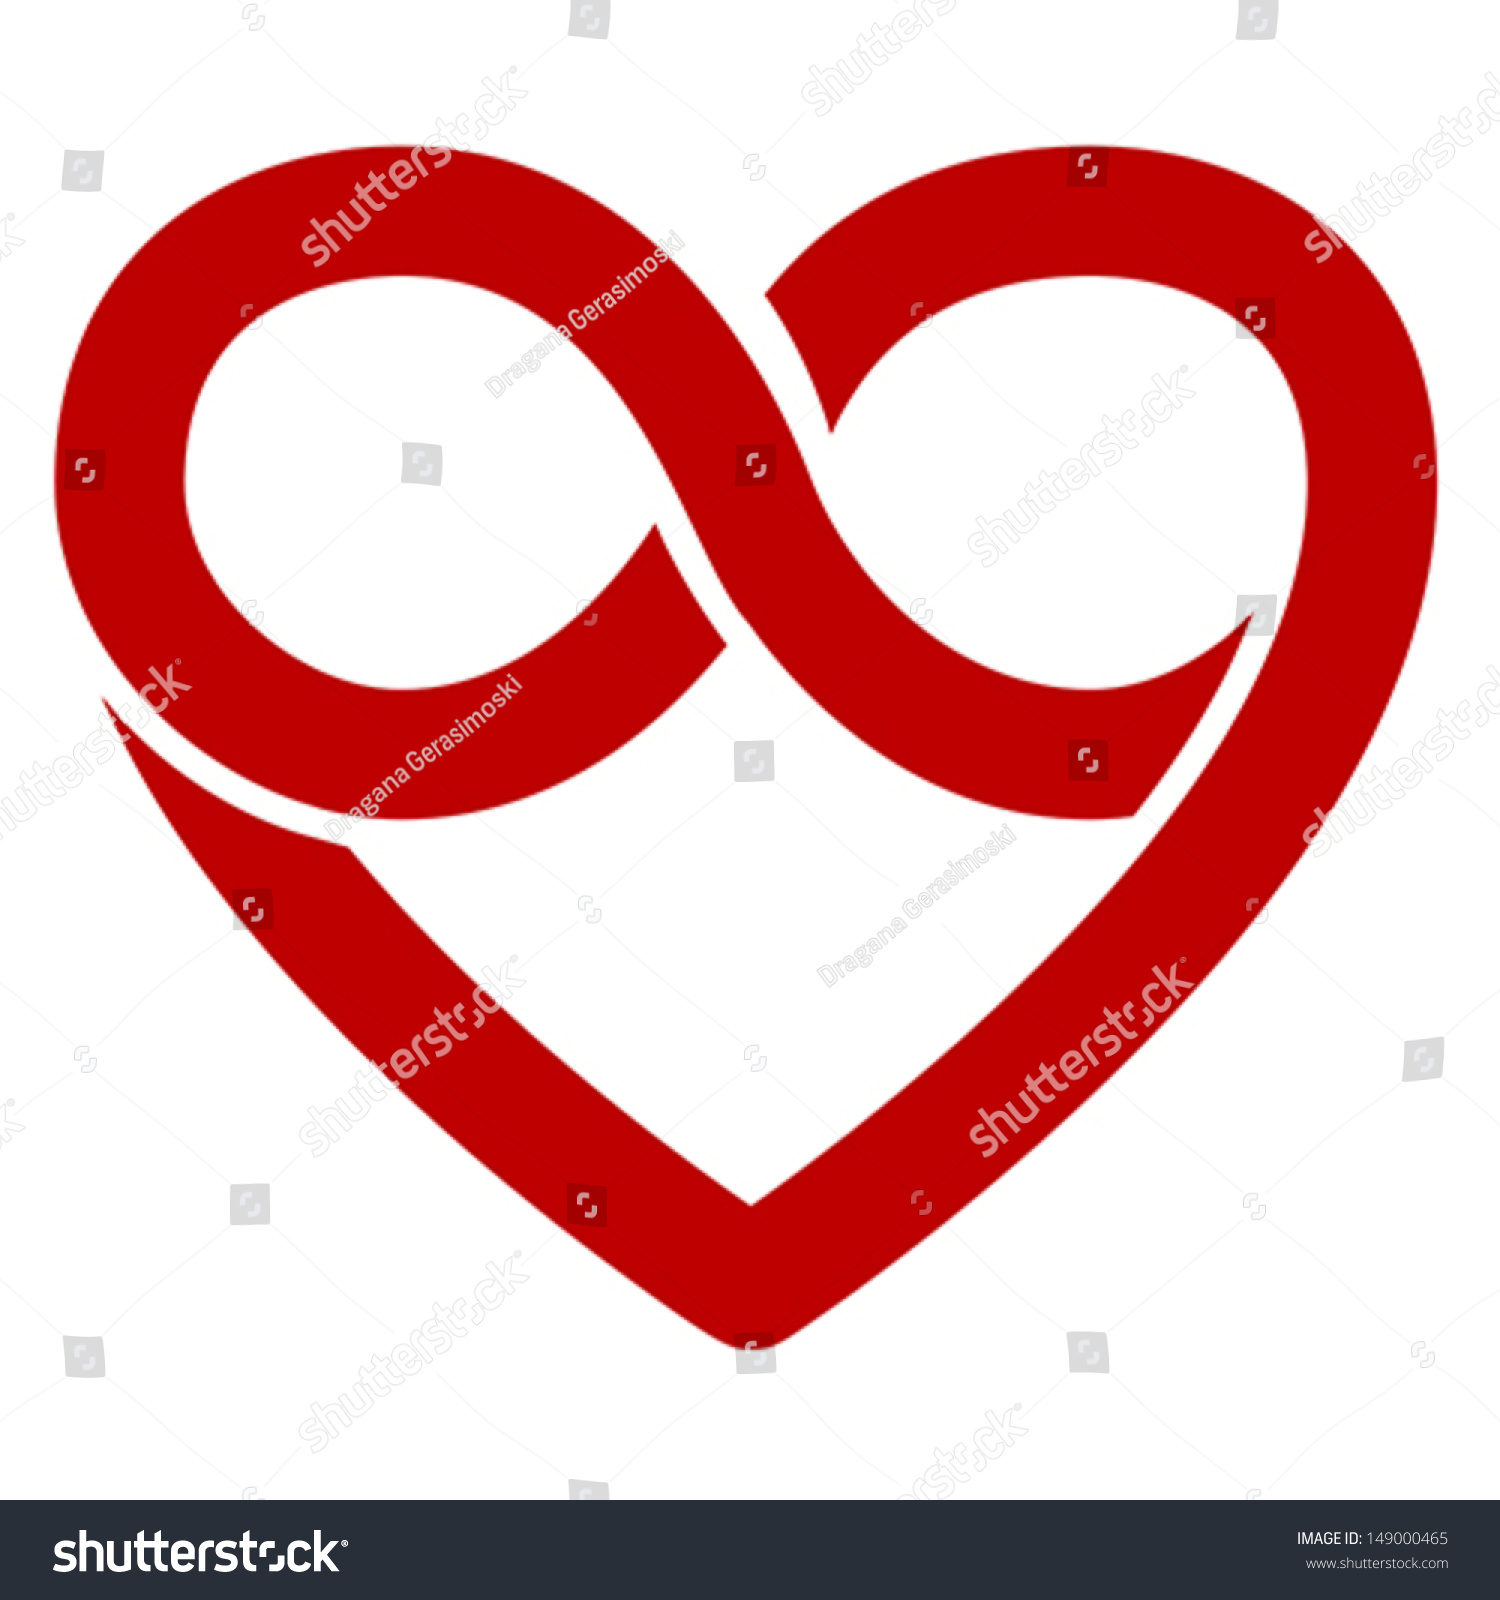 Infinity heart symbol love forever icon stock vector 149000465 infinity heart symbol love forever icon vector isolated on white biocorpaavc Images